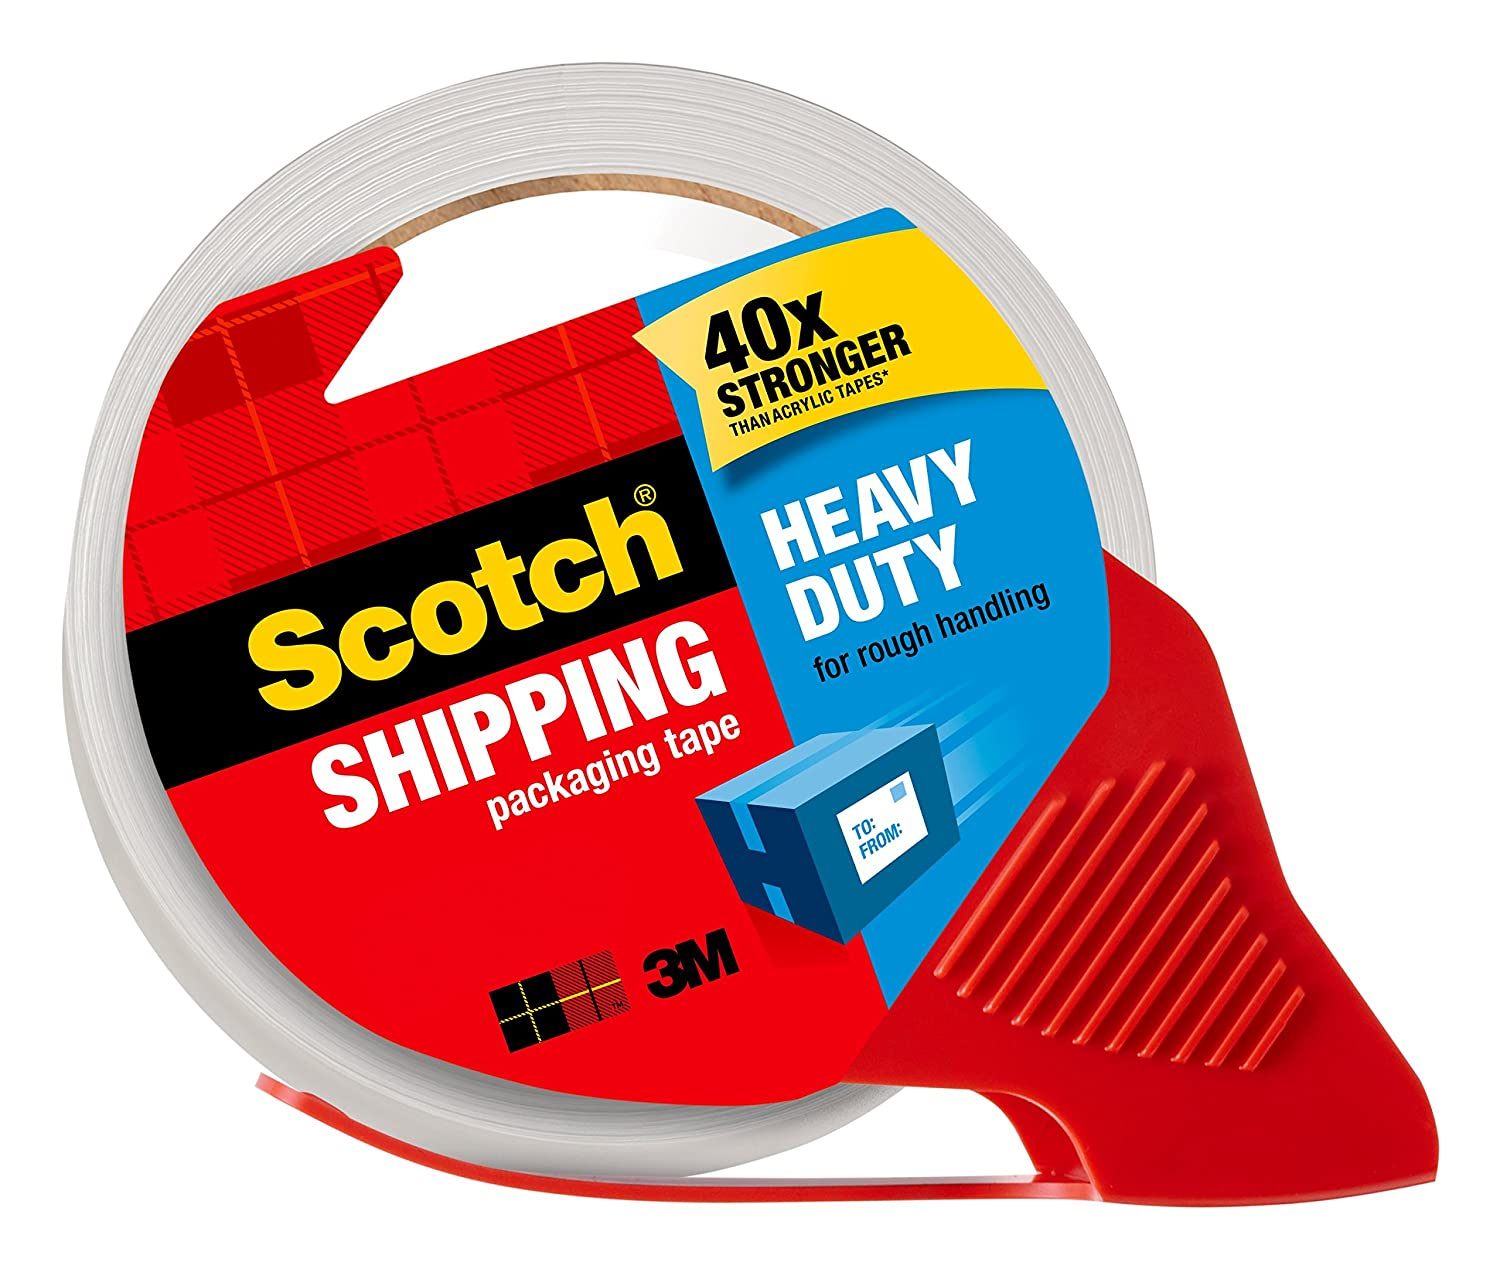 Scotch 3850-6-ESF Heavy Duty Shipping Packaging Tape, 48mm x 50m, 6 Rolls 3M Canada Company - CE/Office